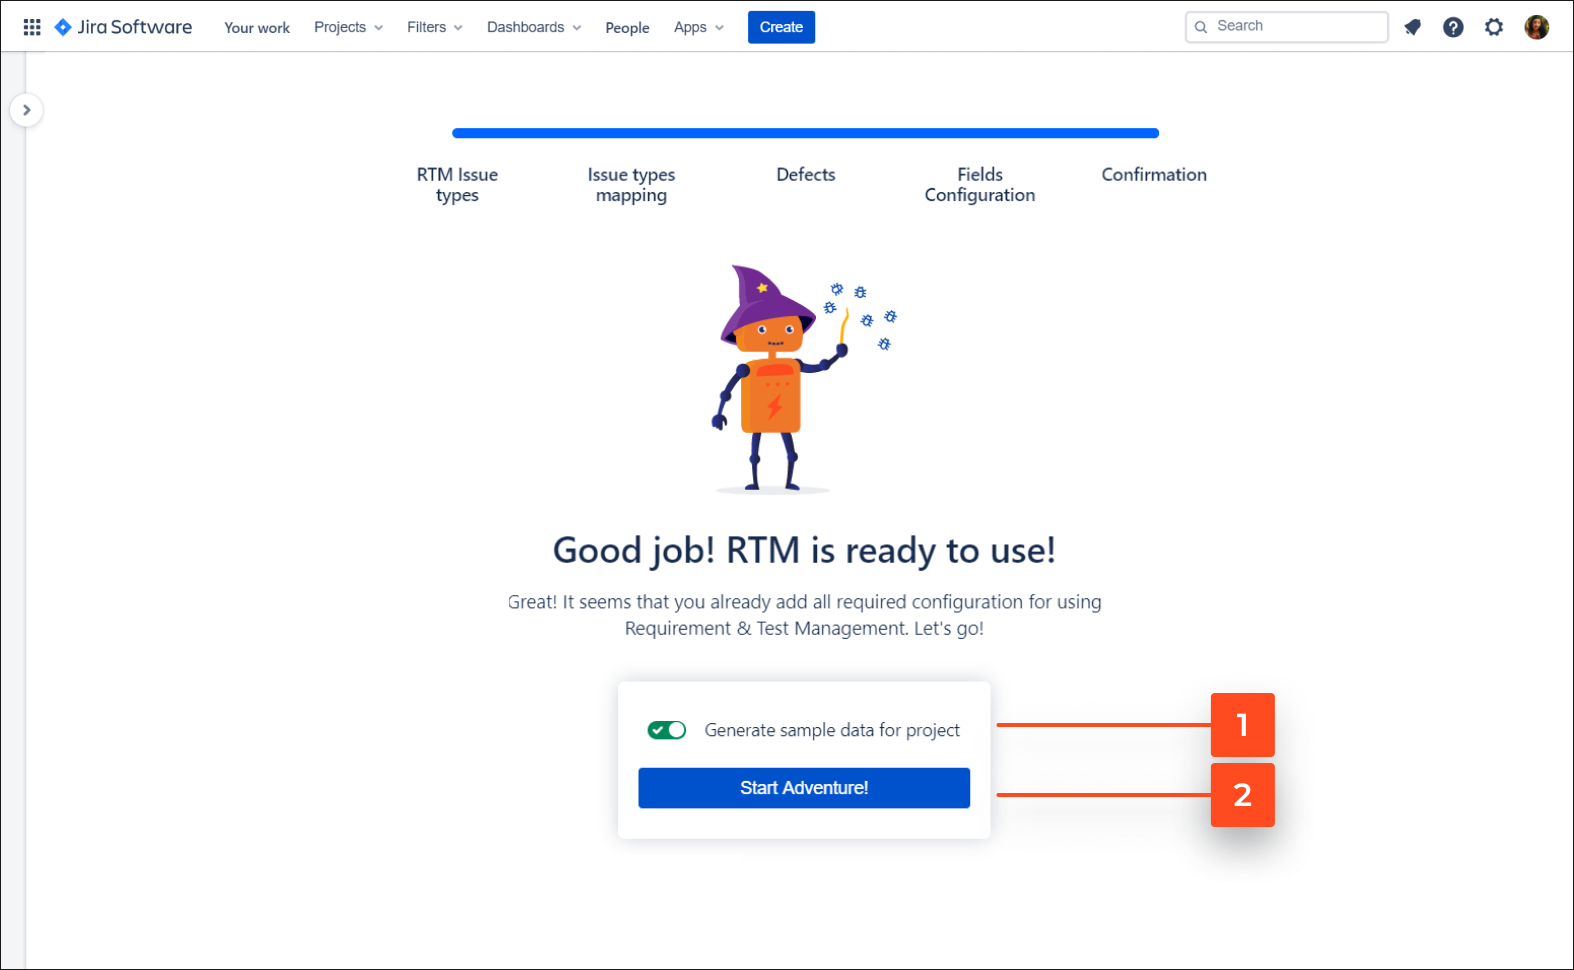 Now you can start your adventure with Requirements and Test Management for Jira app